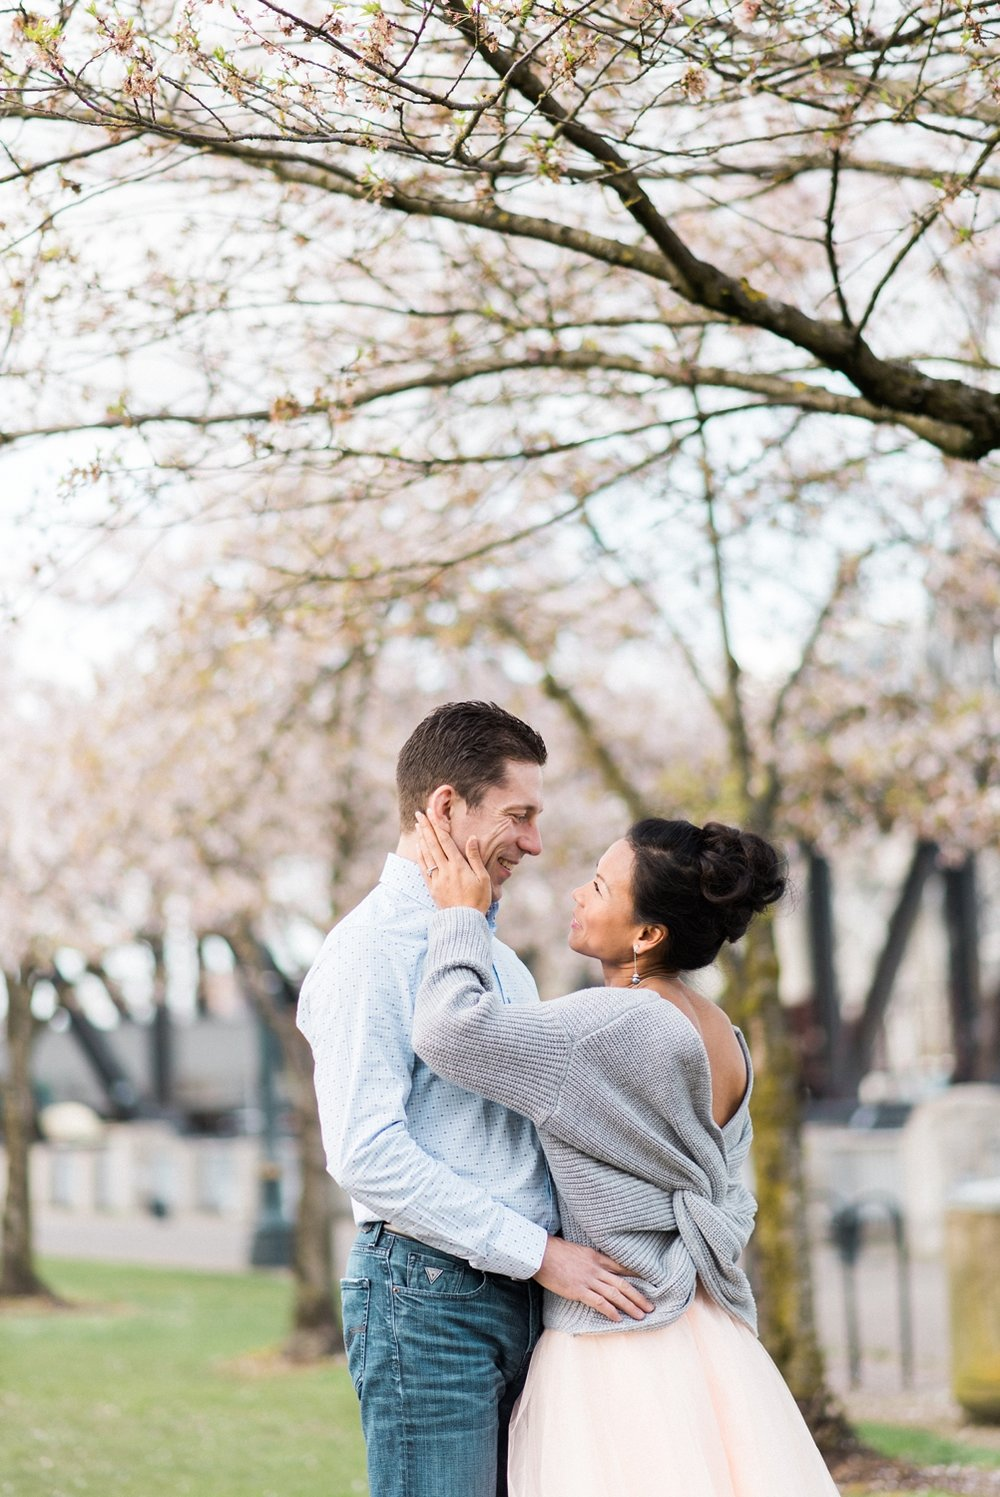 portland-waterfront-engagement-cherry-blossom-cathedral-park-sokhorn-jay-015_cr.jpg